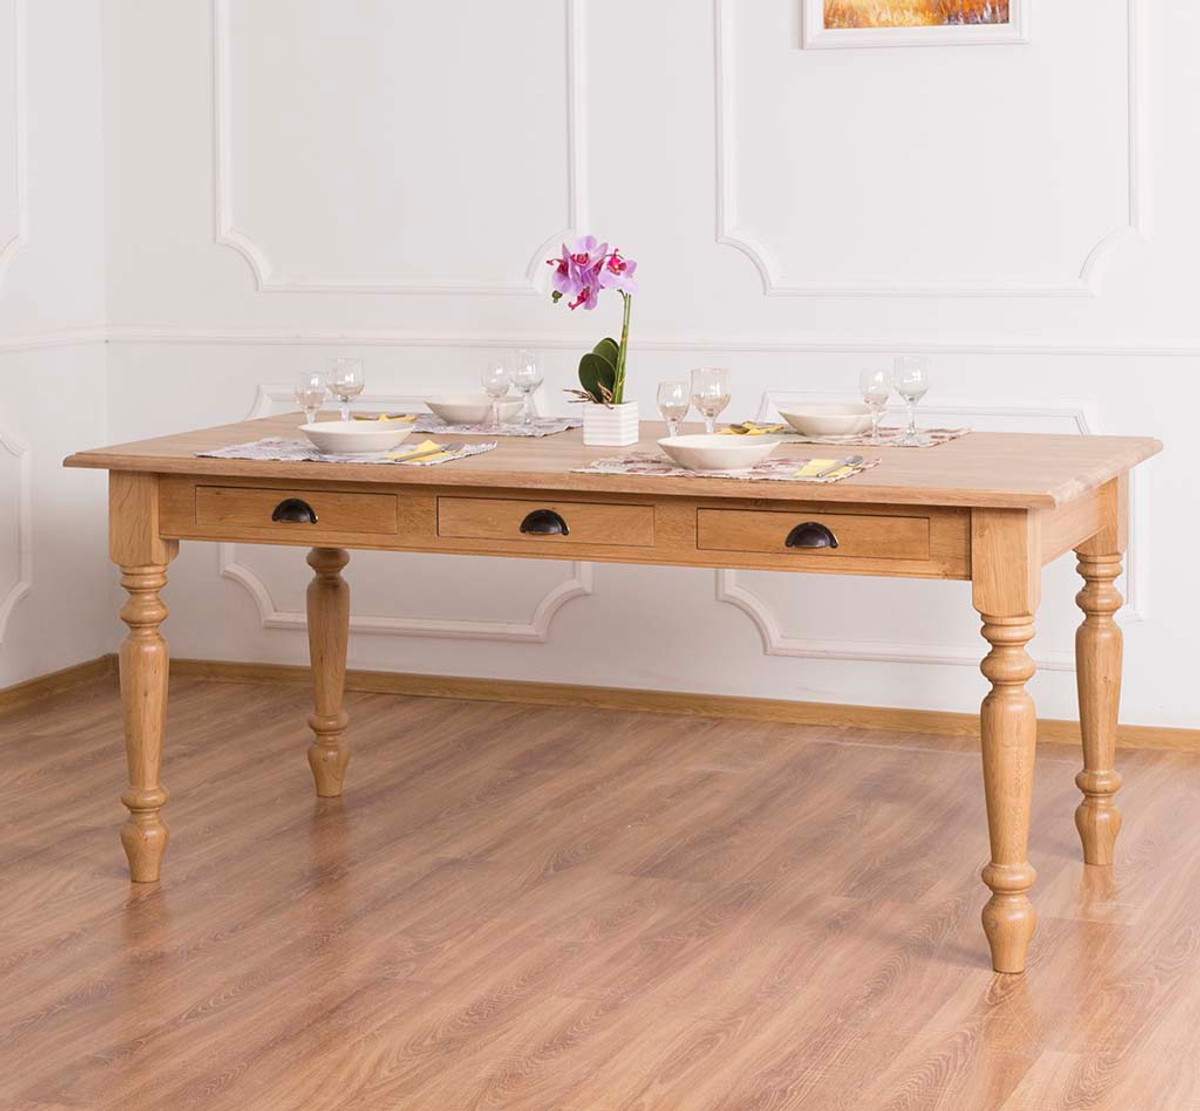 Casa Padrino Country Style Dining Table Natural Color 180 X 90 X H 78 Cm Country Style Dining Room Furniture